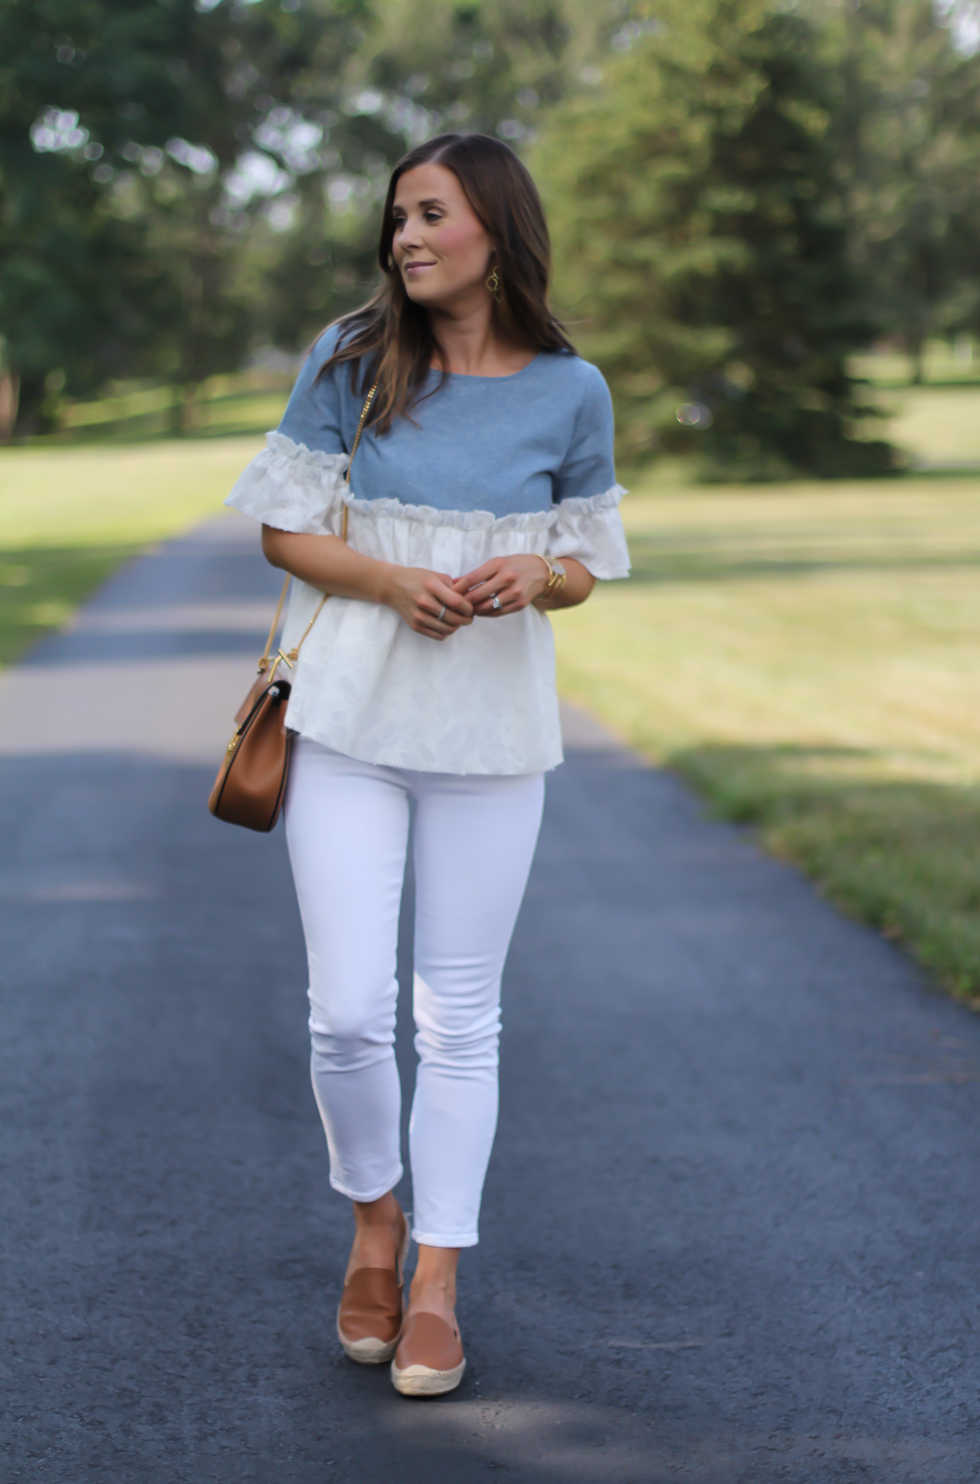 White + Chambray and the Nordstrom Anniversary Preview Sale